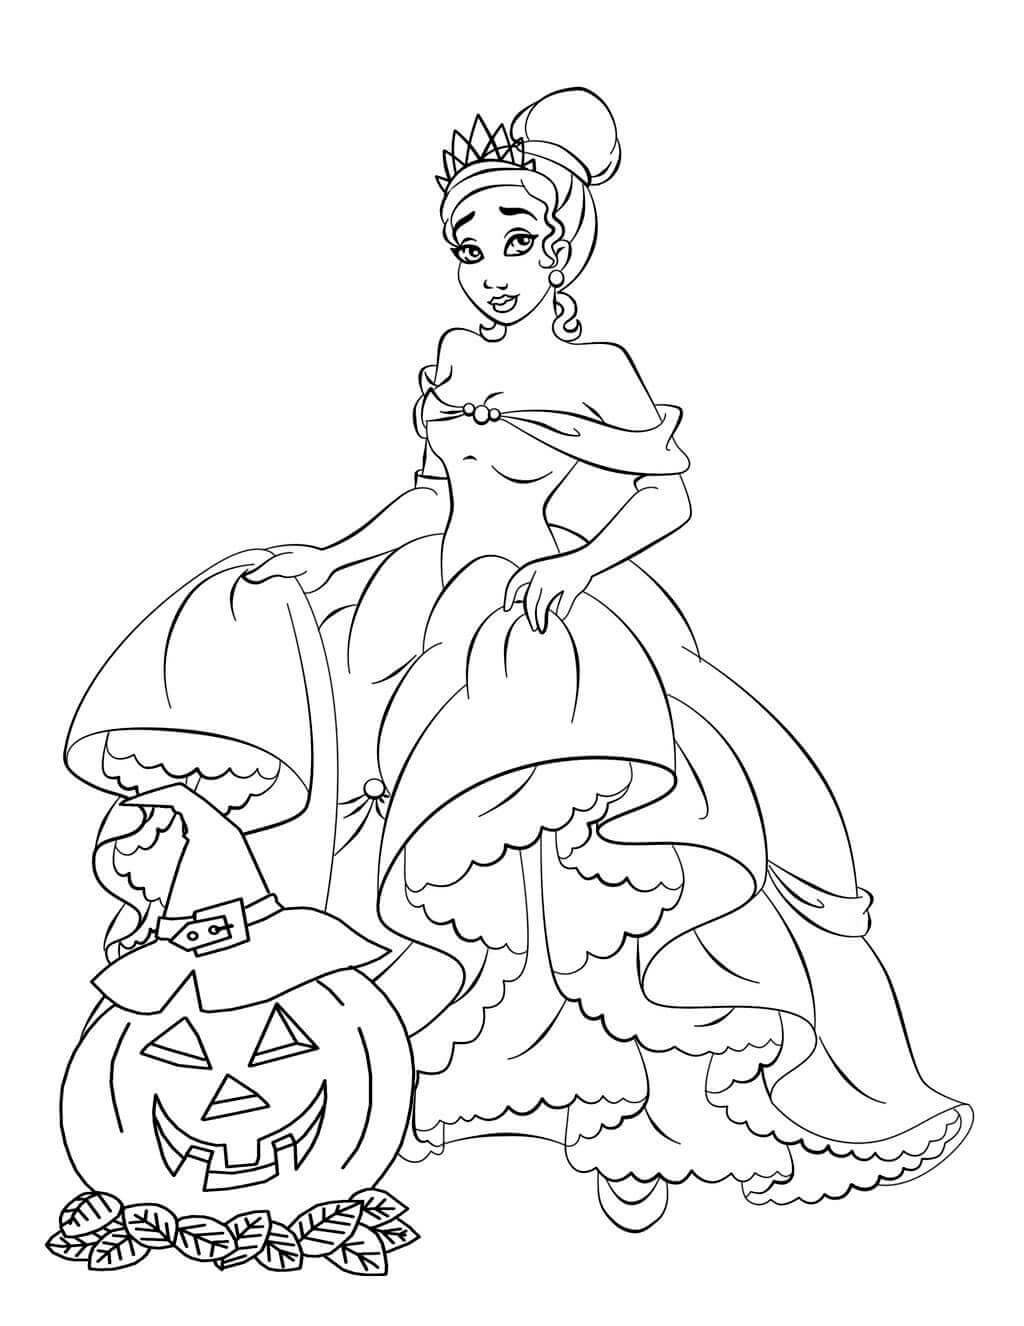 Disney Halloween Coloring Pages Printable Stitch Disney Coloring ... | 1326x1024